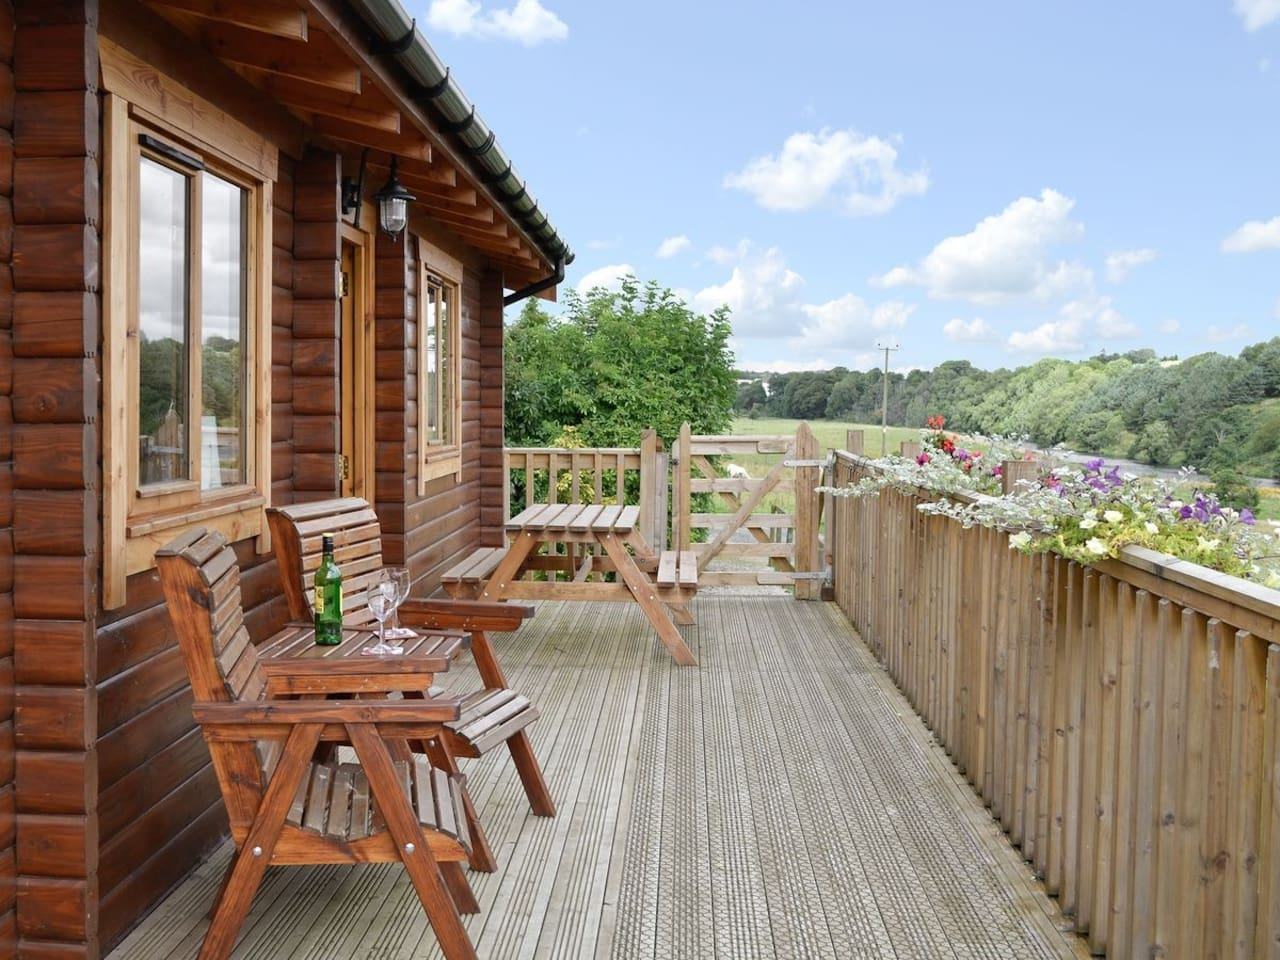 Lovely Views and seating area